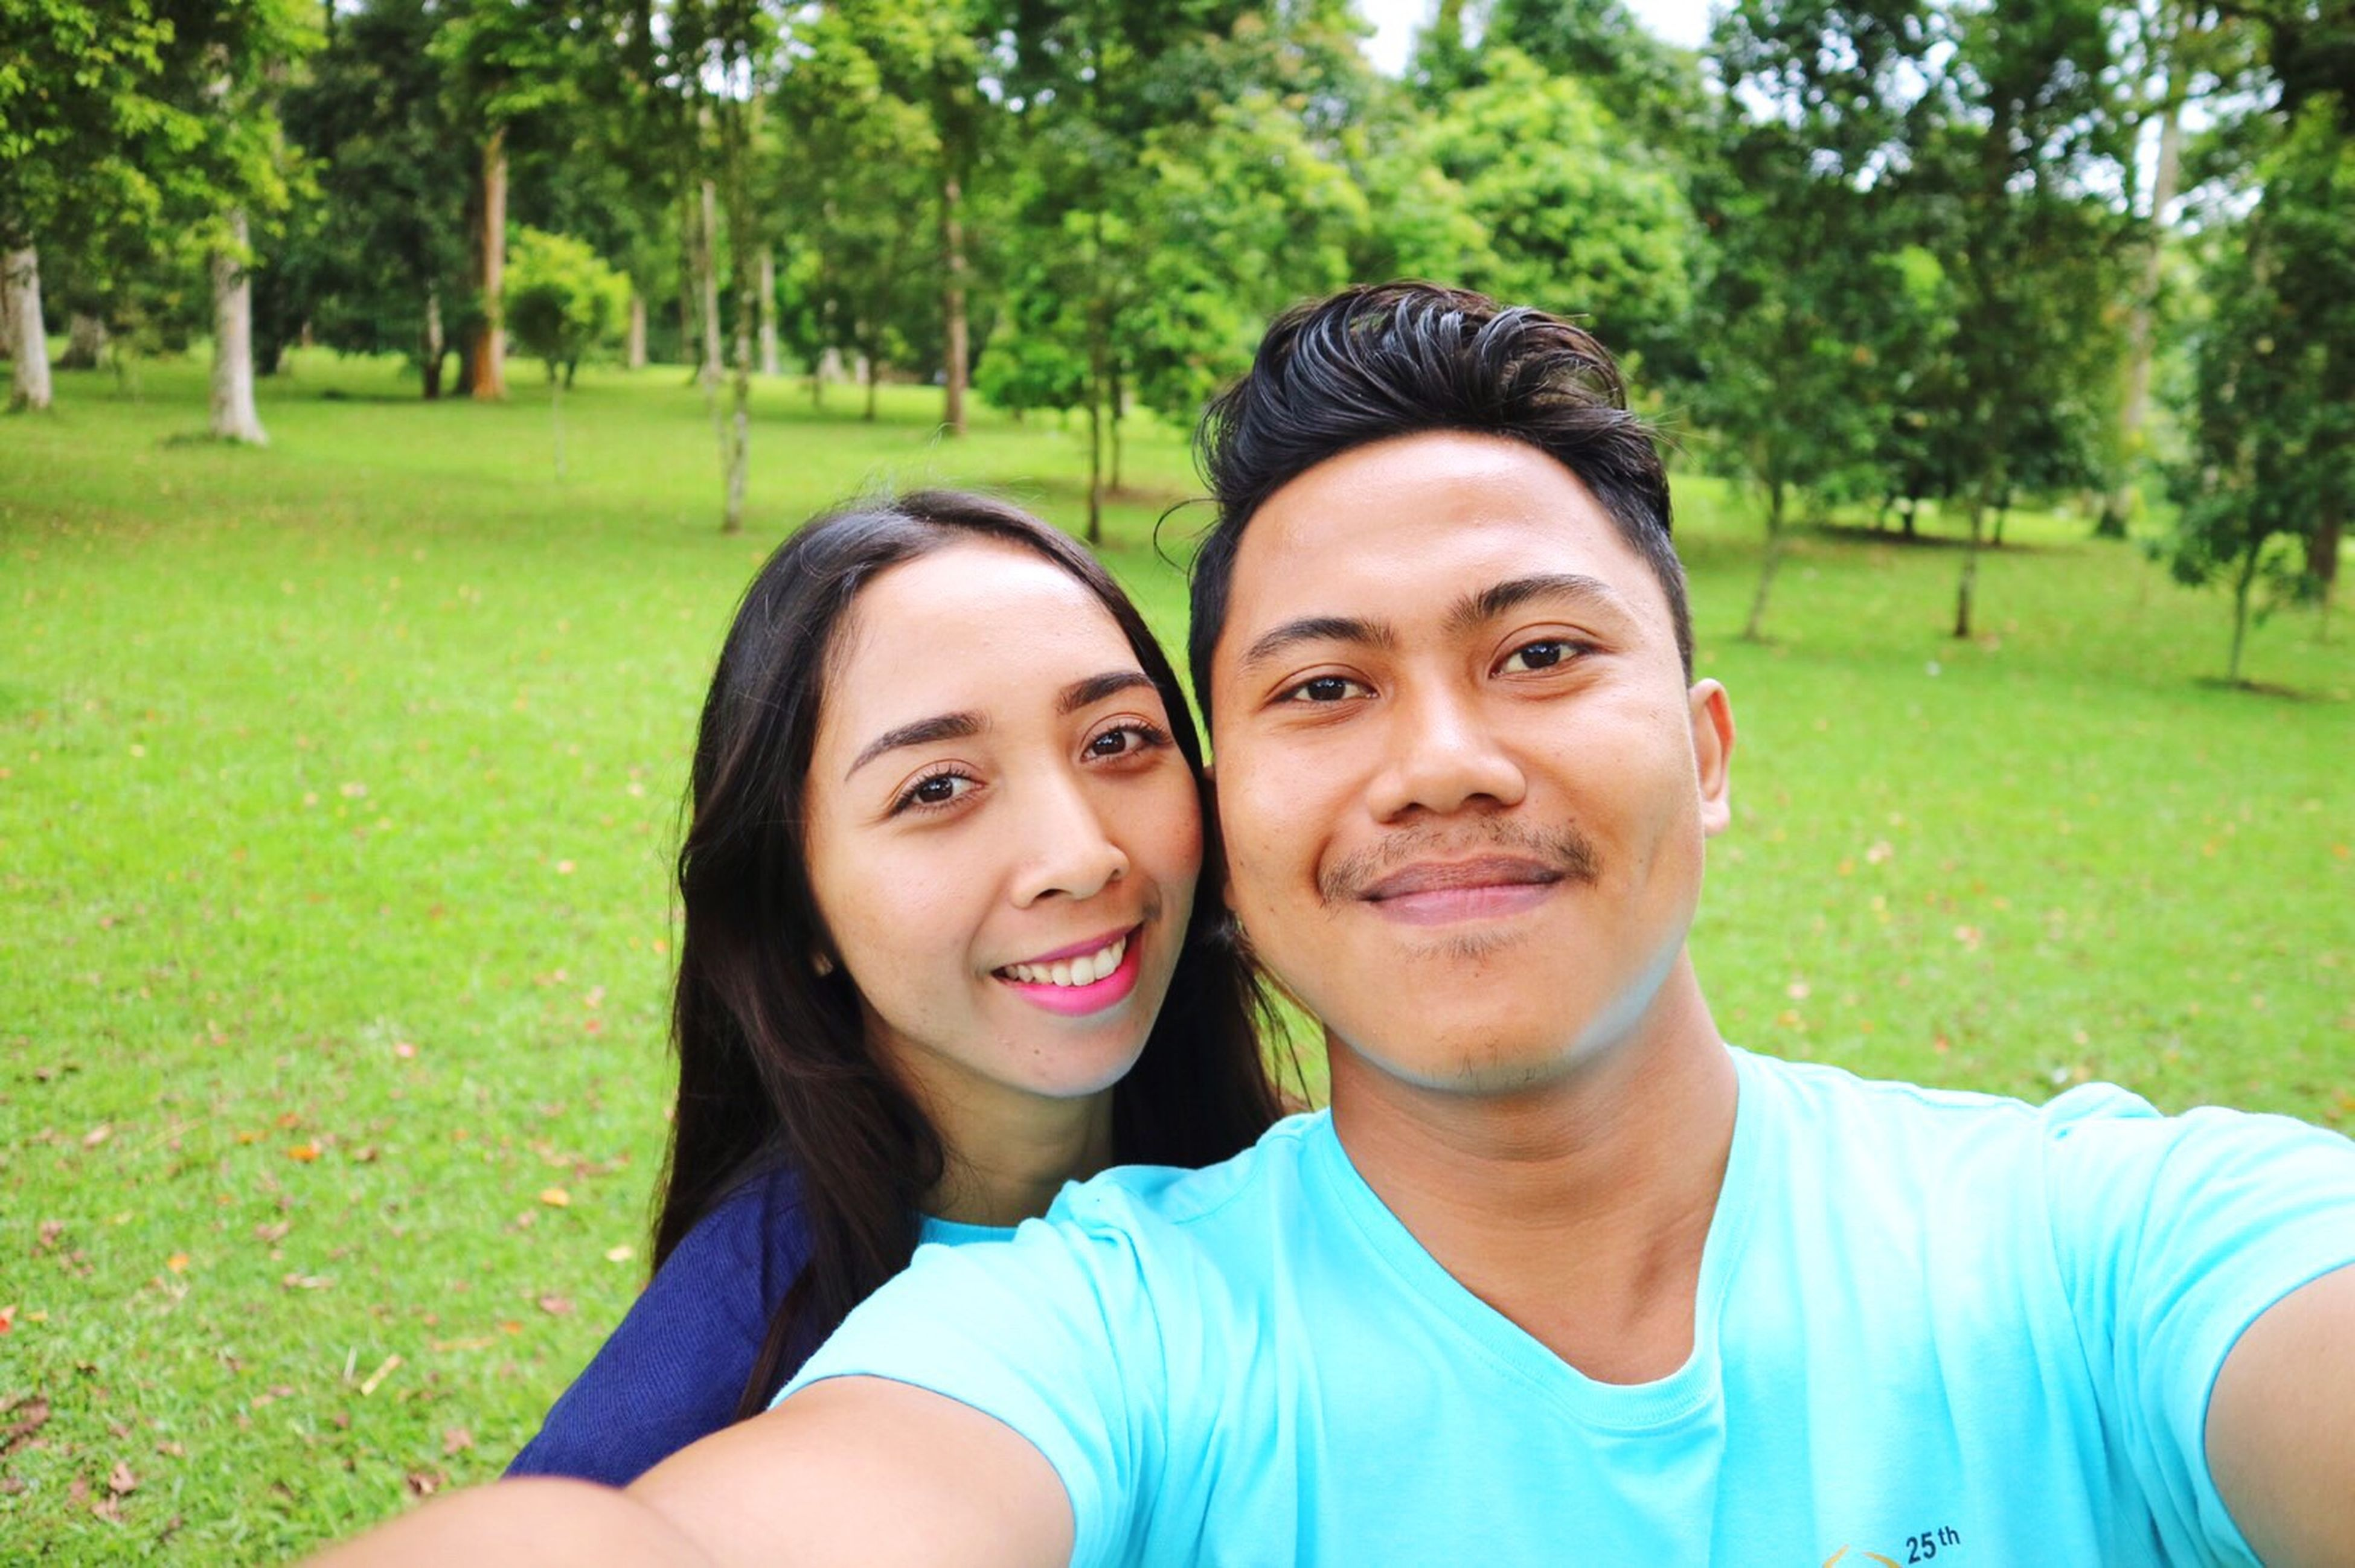 two people, looking at camera, smiling, togetherness, love, tree, portrait, selfie, happiness, grass, headshot, outdoors, day, young adult, green color, young women, cheerful, bonding, photography themes, nature, adult, people, close-up, adults only